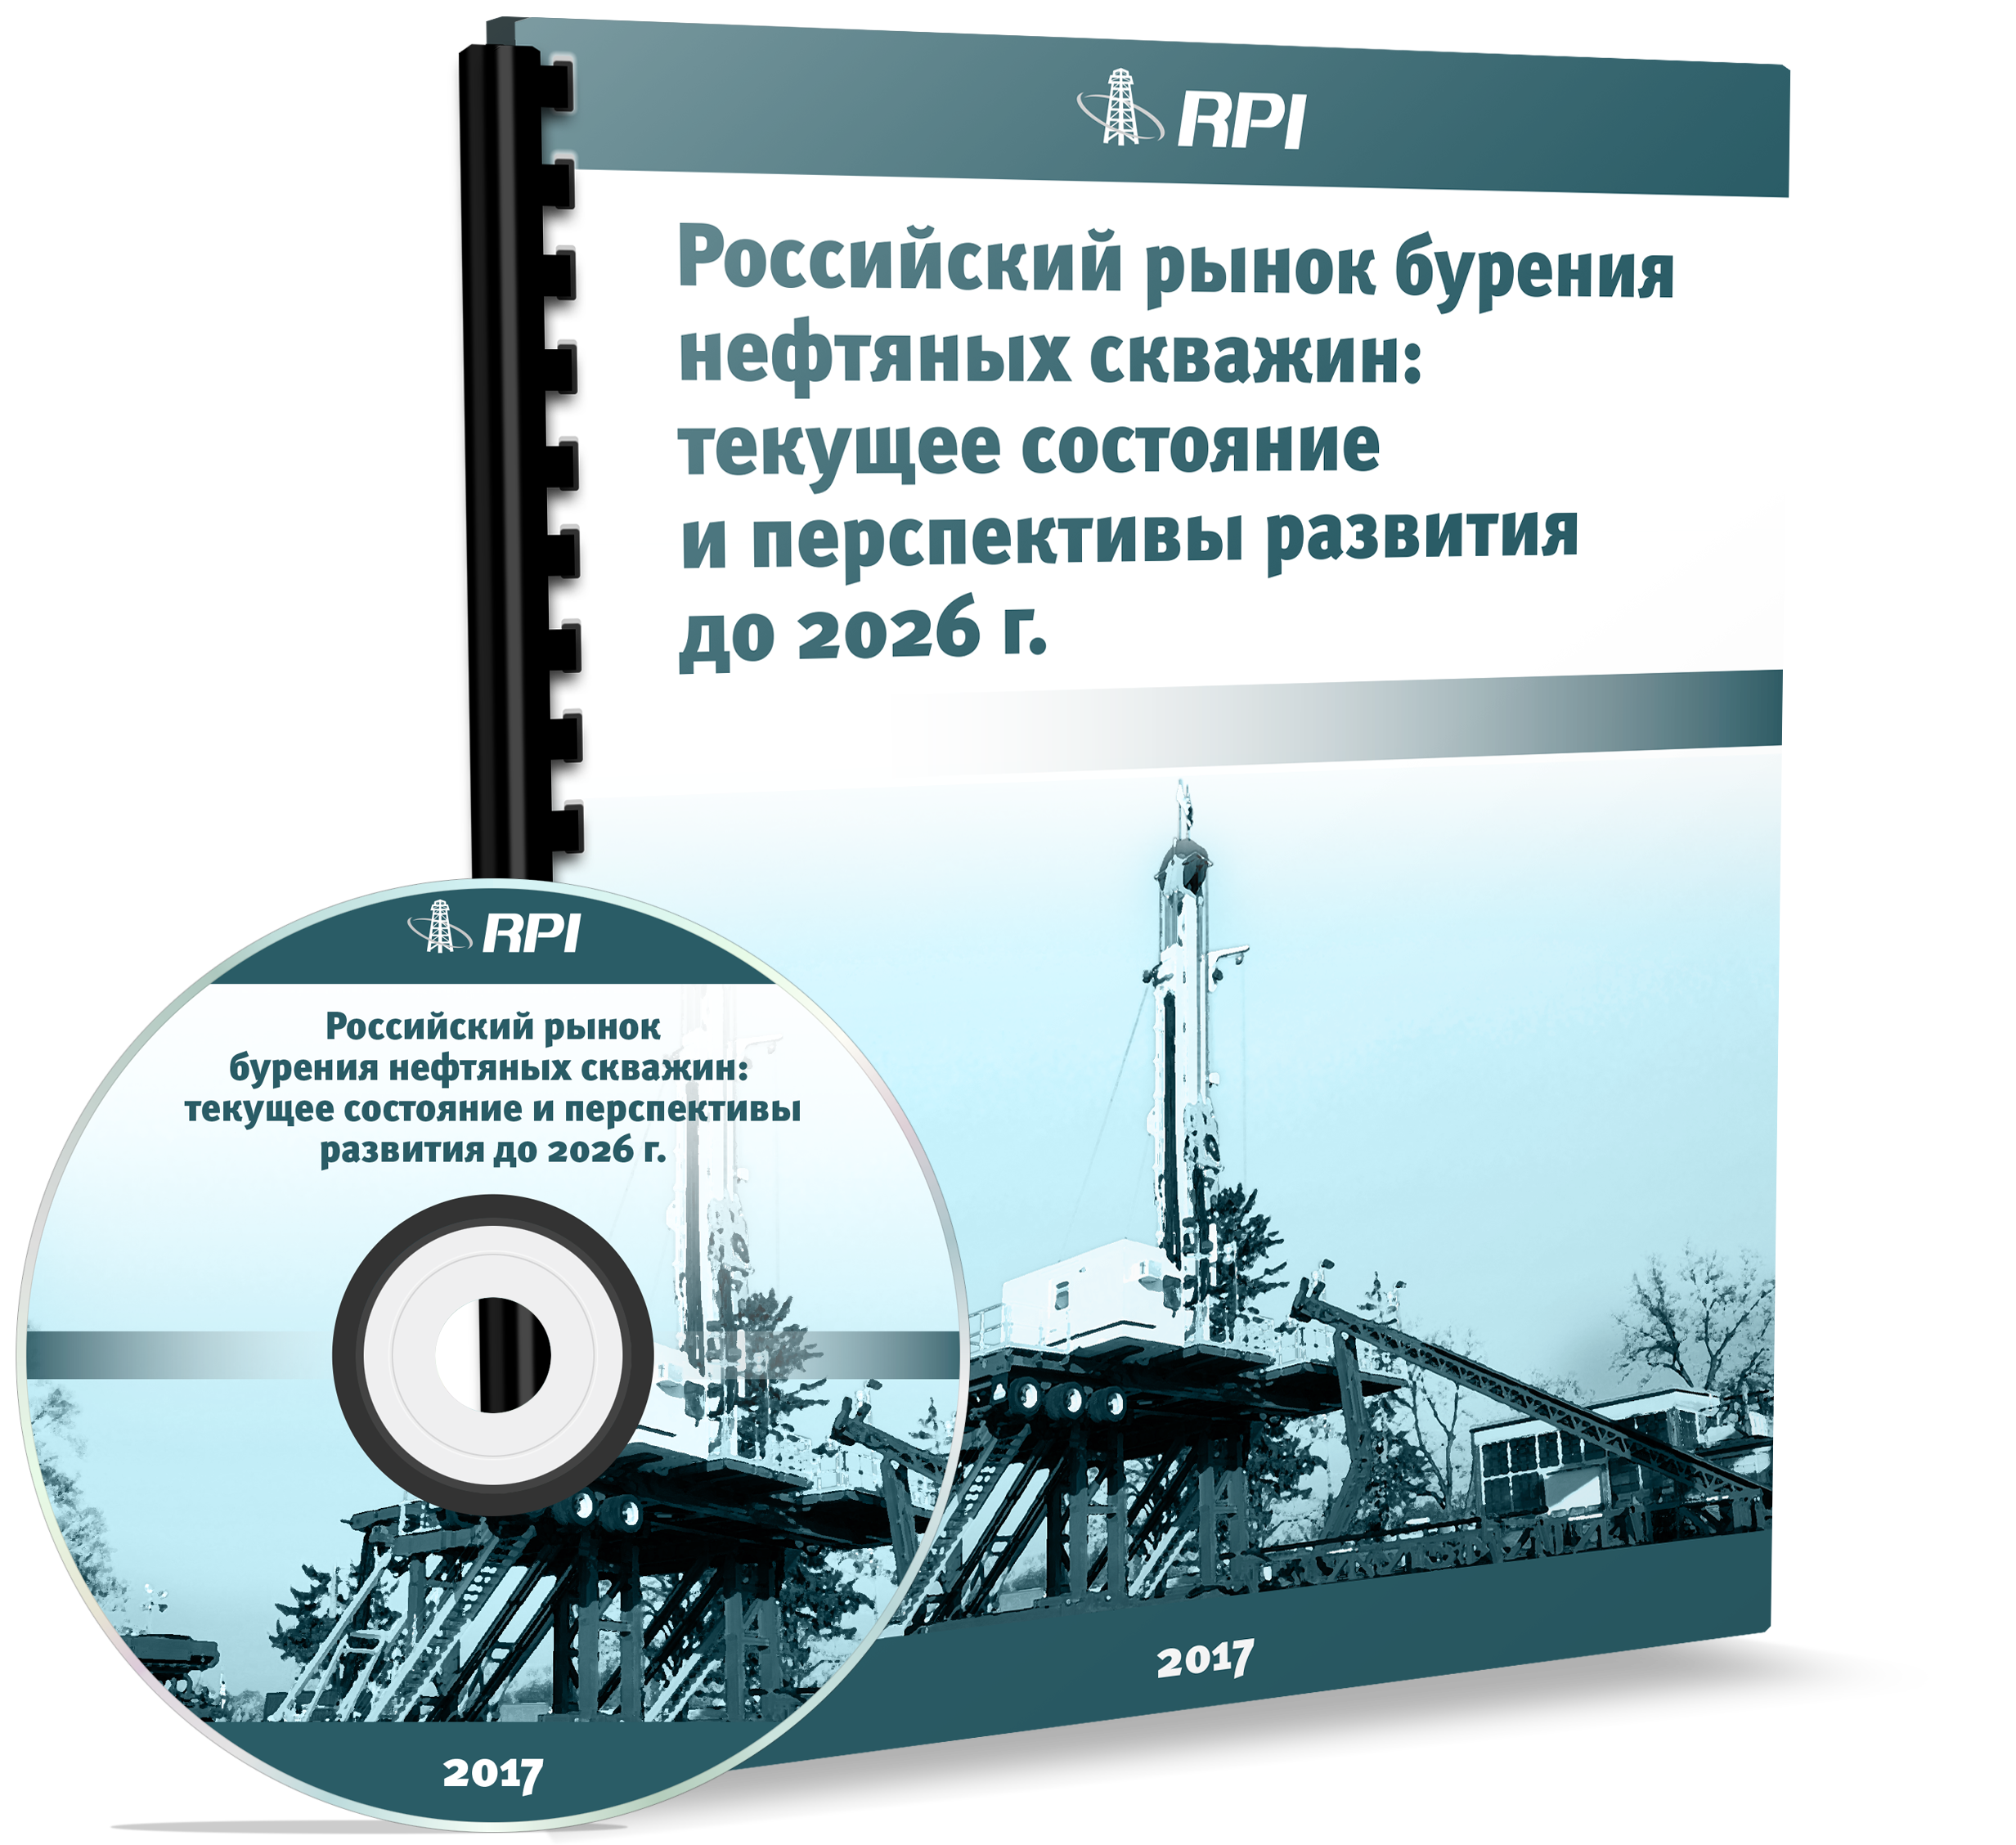 Russian Oil Drilling Market: Current Situation and Development Prospects through 2026